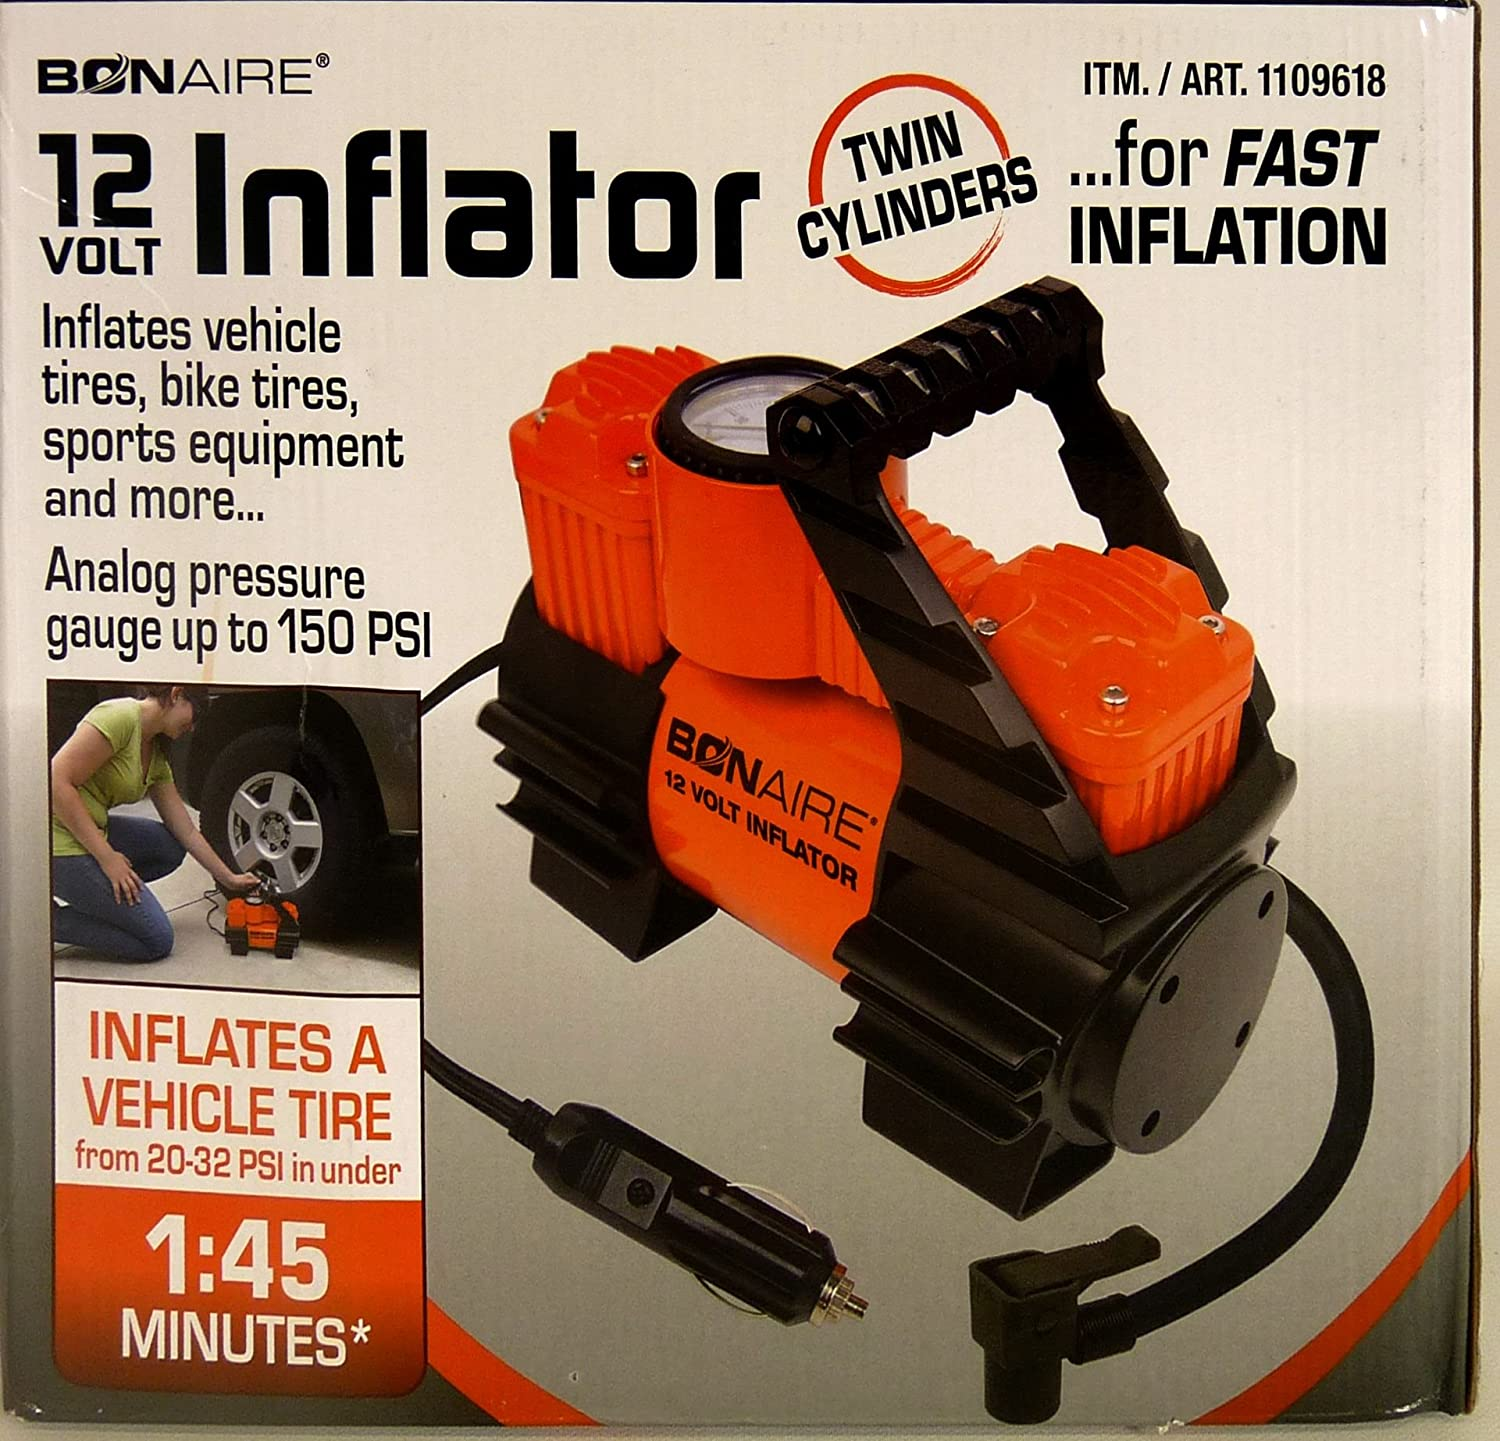 Bonaire Cordless Multi-Purpose 12v Cordless Inflator #TC12C (Orange) - - Amazon.com